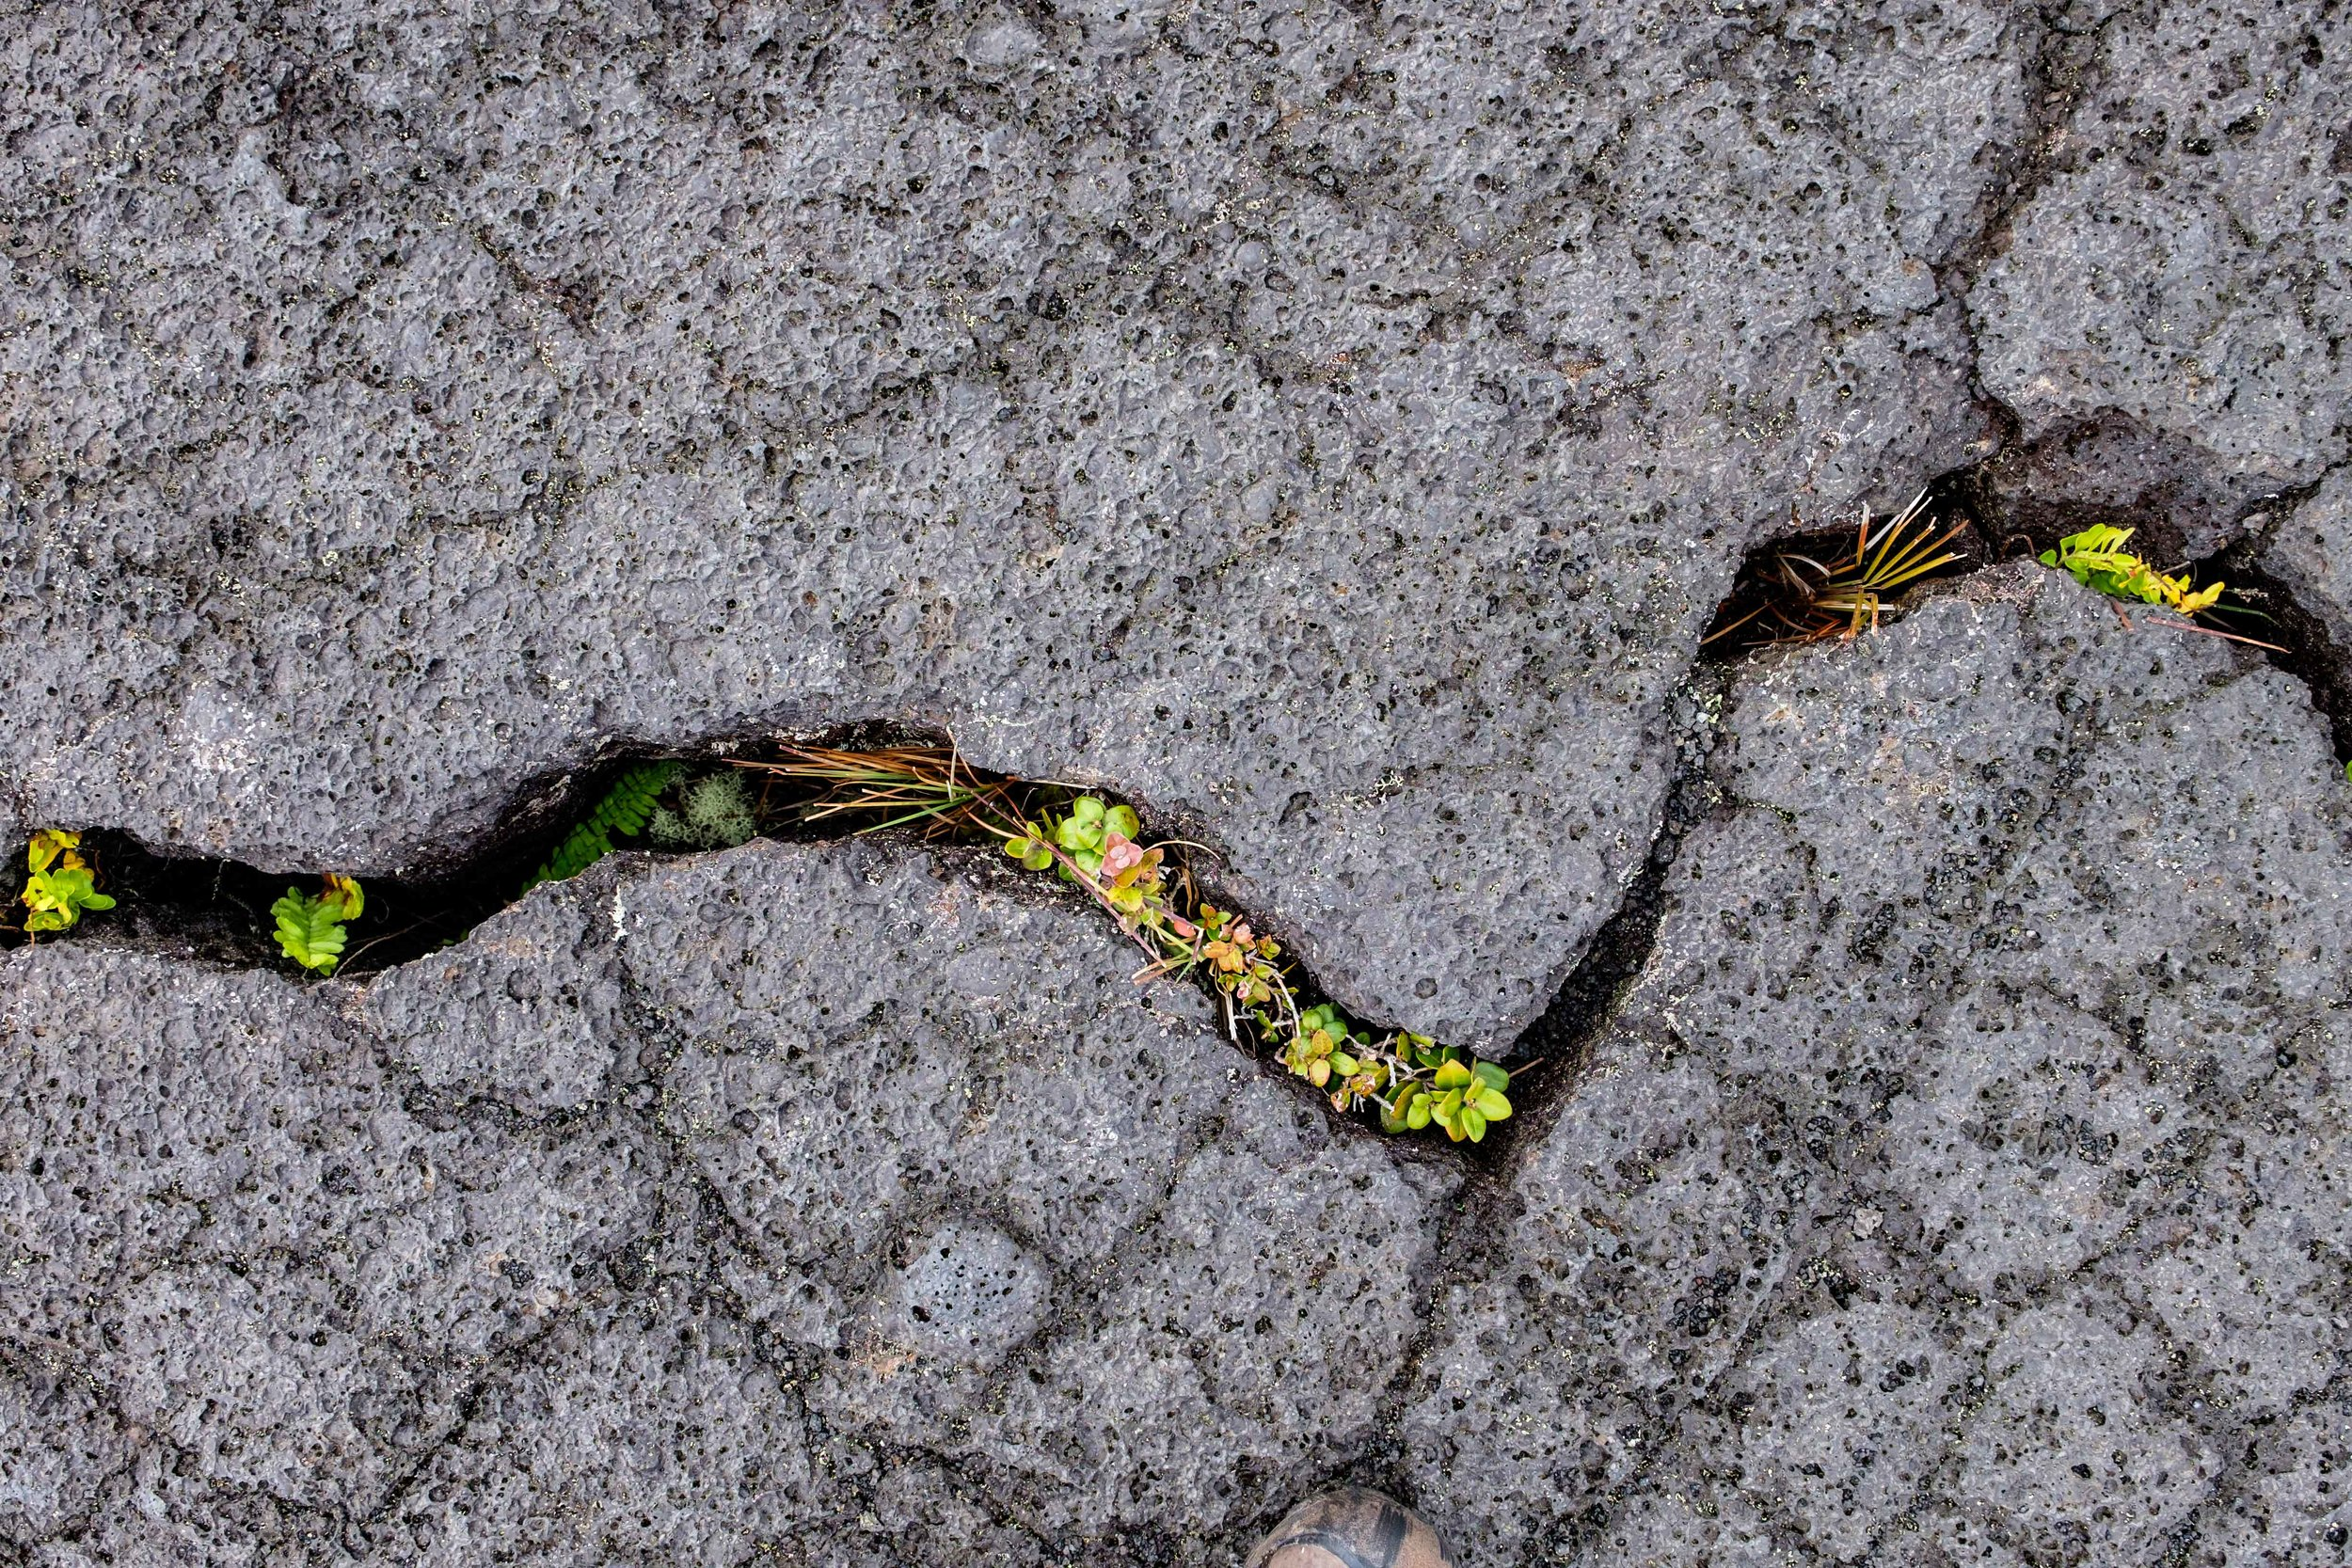 Life growing from inside the hardened lava.